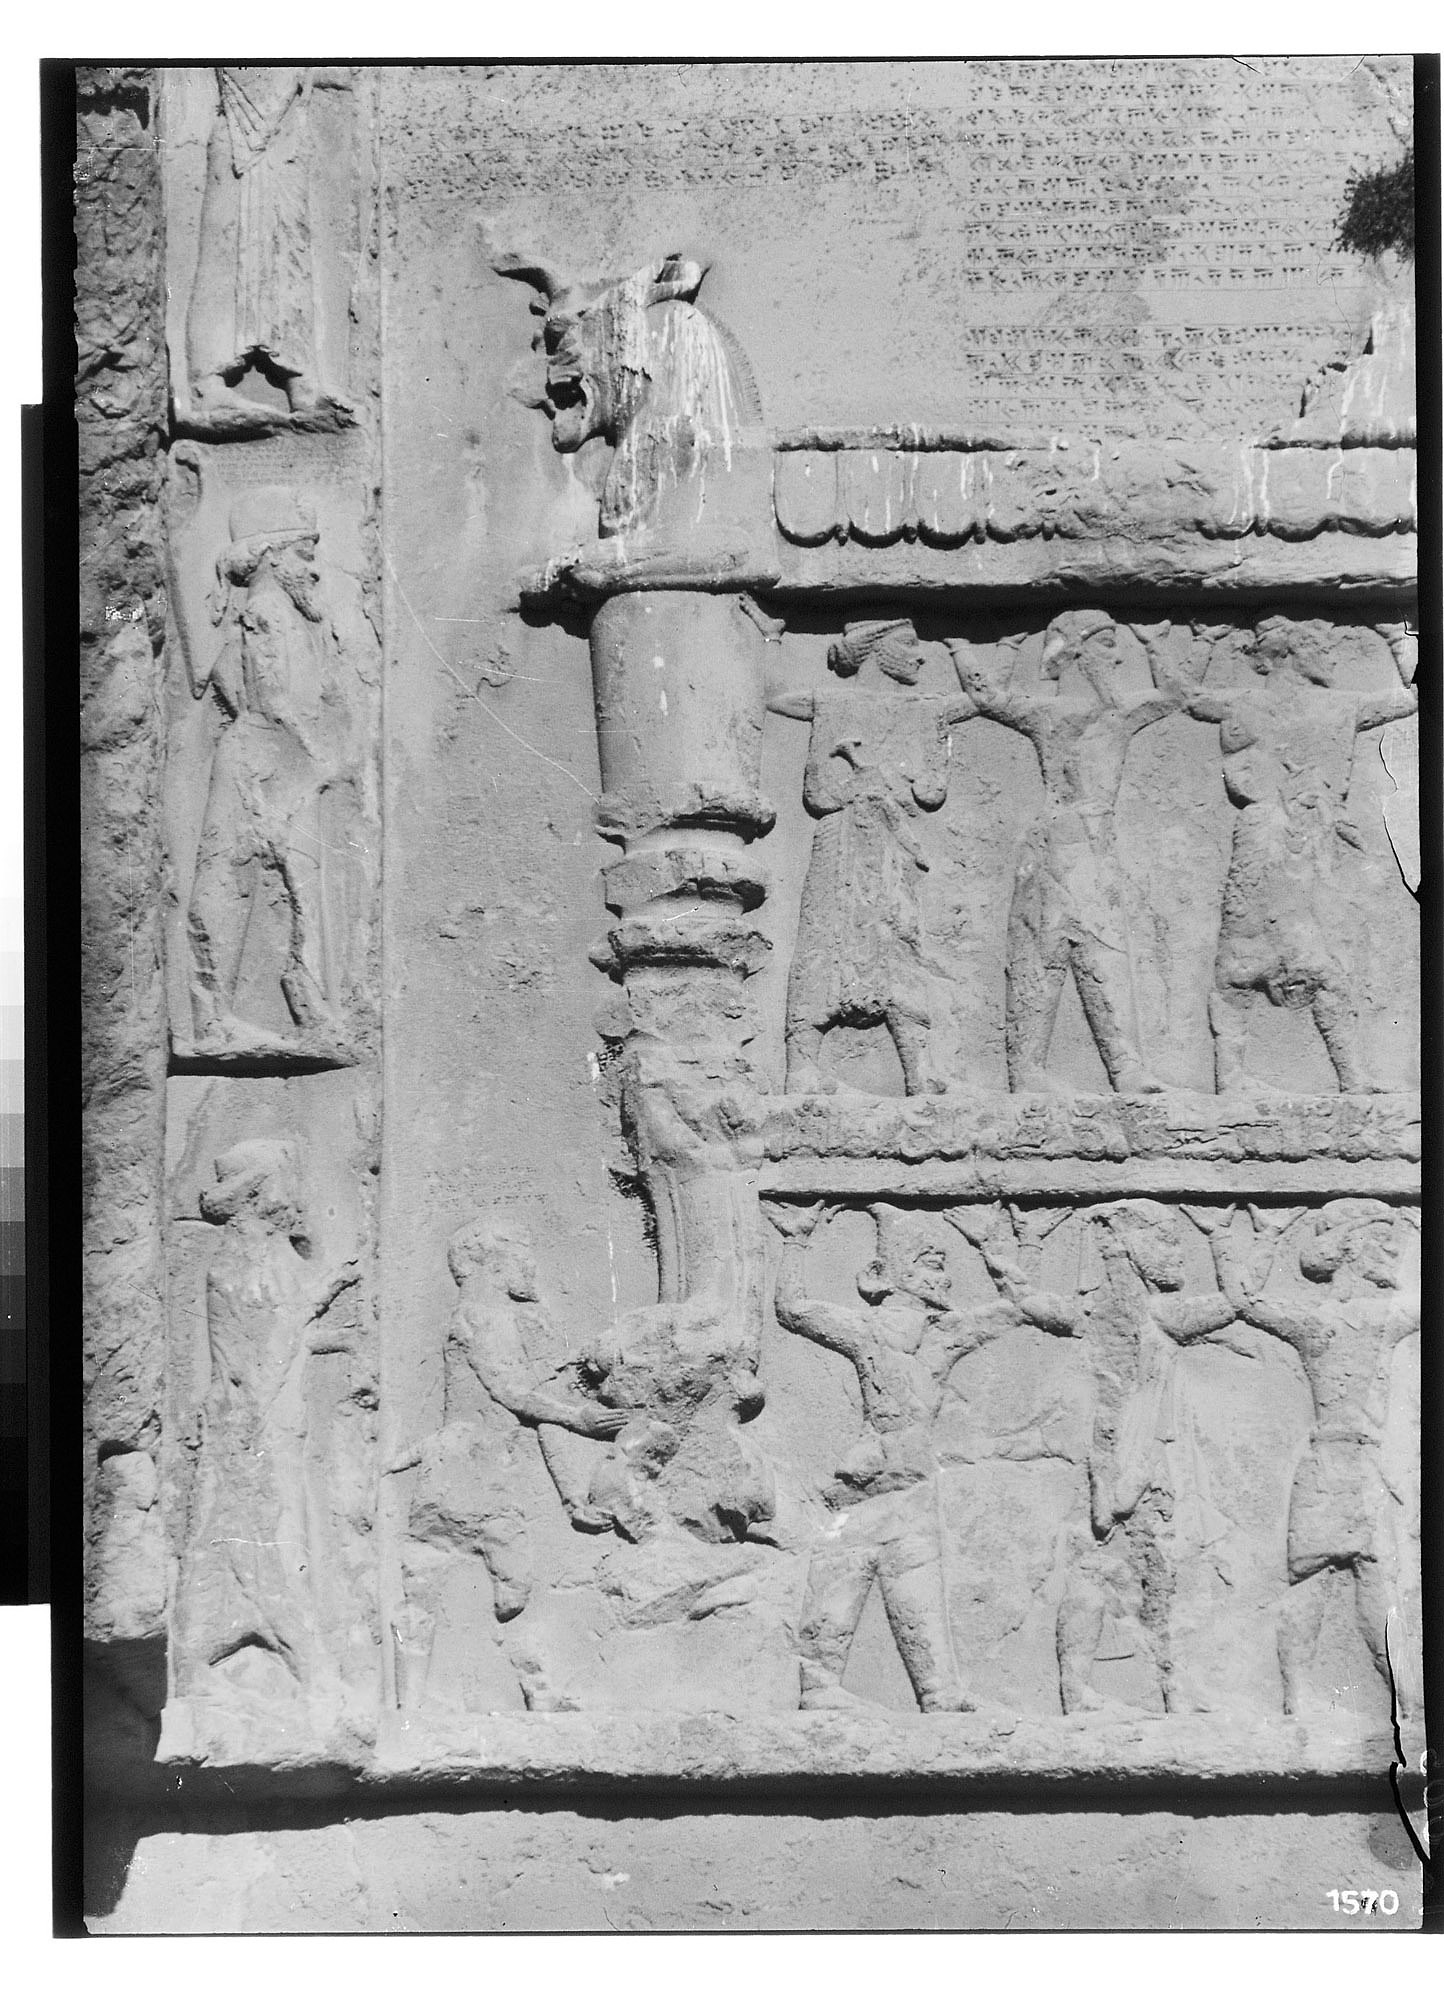 Naqsh-i Rustam (Iran): Achaemenid Tomb of Darius I, Upper Register: View of Reliefs Depicting Persian Guards and Representatives of all Nations of the Empire, and Inscription, DNa, Old Persian and Elamite Version graphic